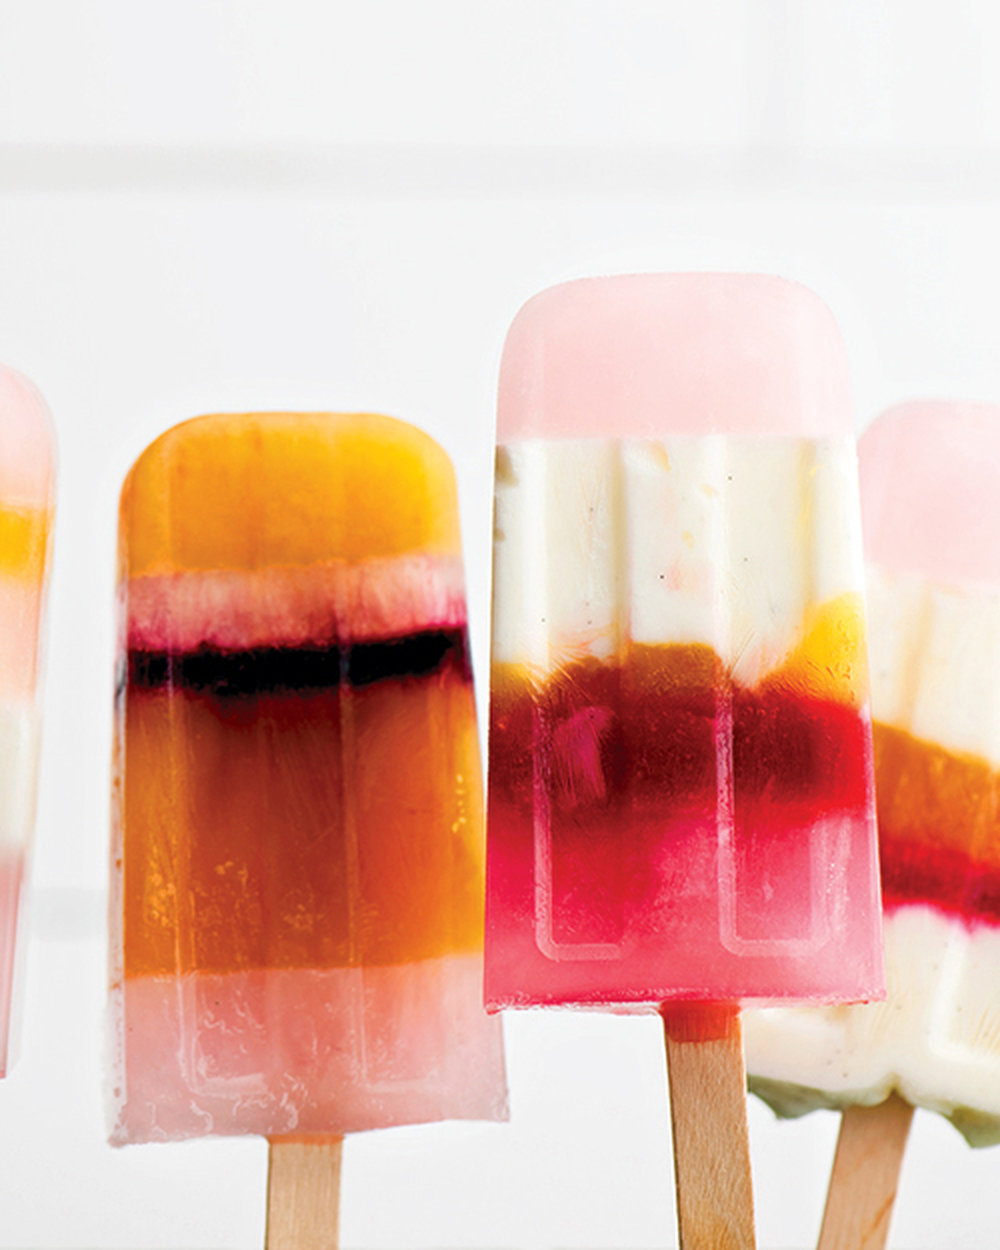 http://www.marthastewart.com/349919/striped-ice-pops